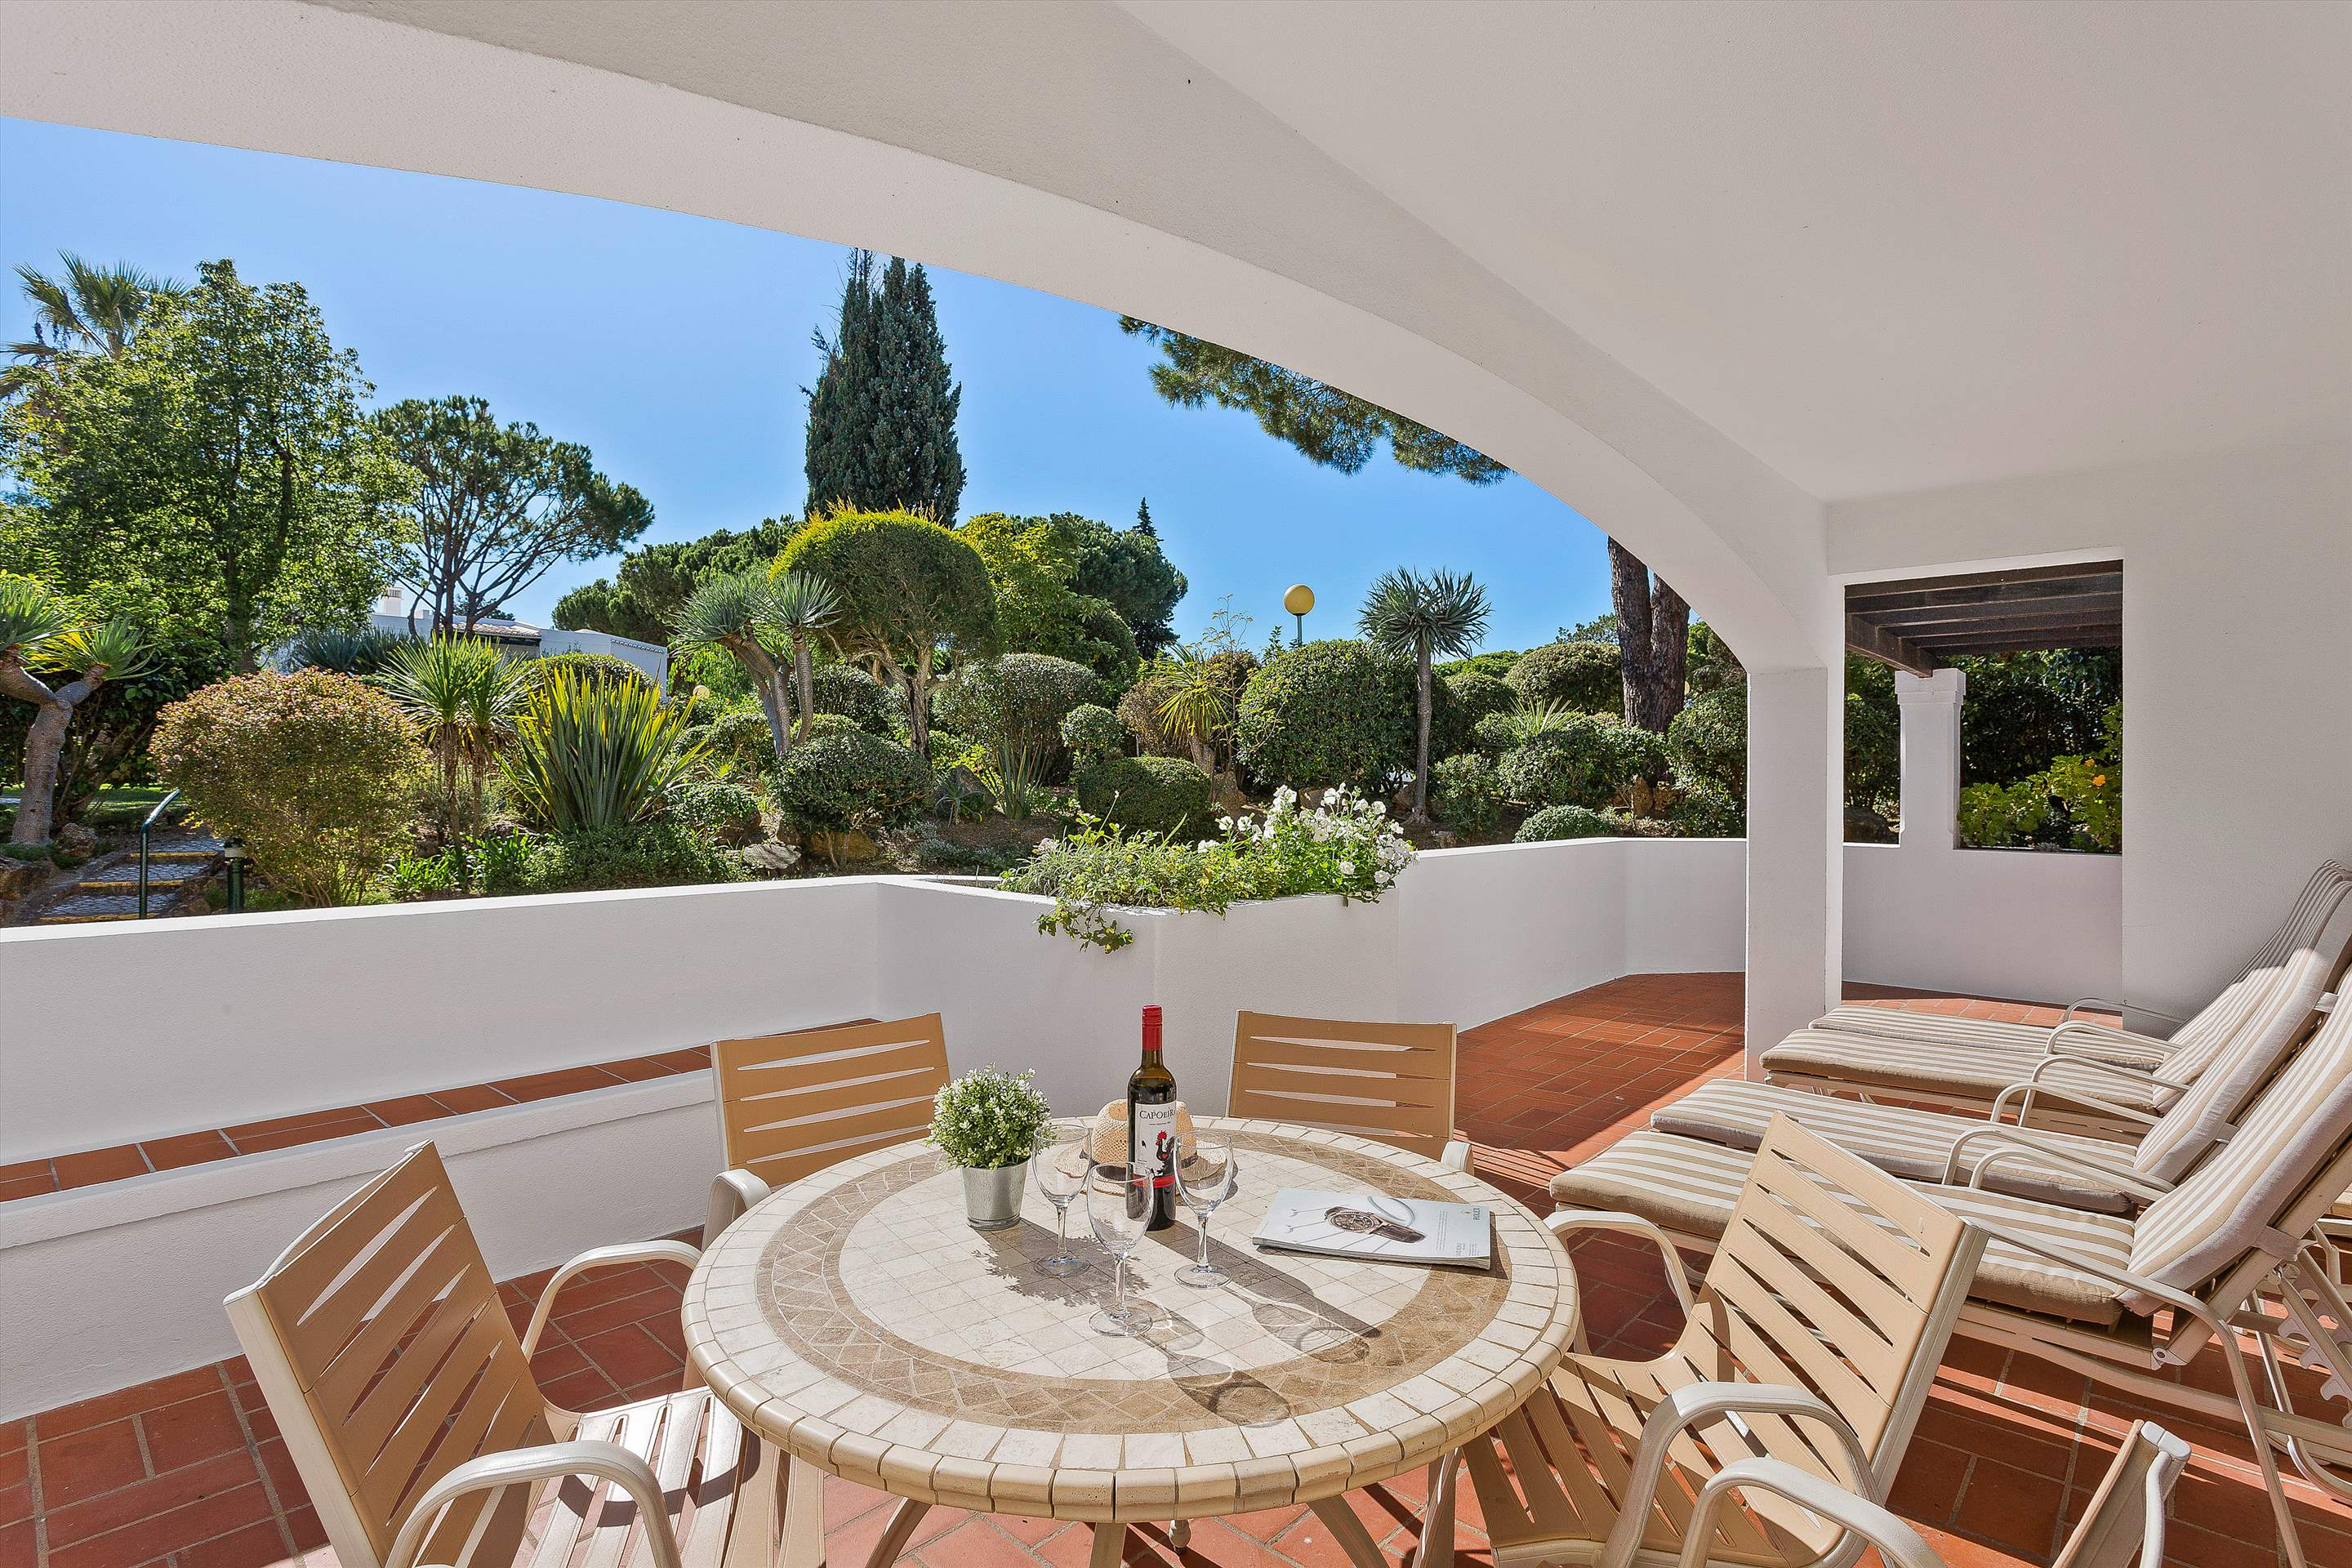 Four Seasons Country Club 2 Bed Townhouse, Superior - Sunday Arrival, 2 bedroom apartment in Four Seasons Country Club, Algarve Photo #2